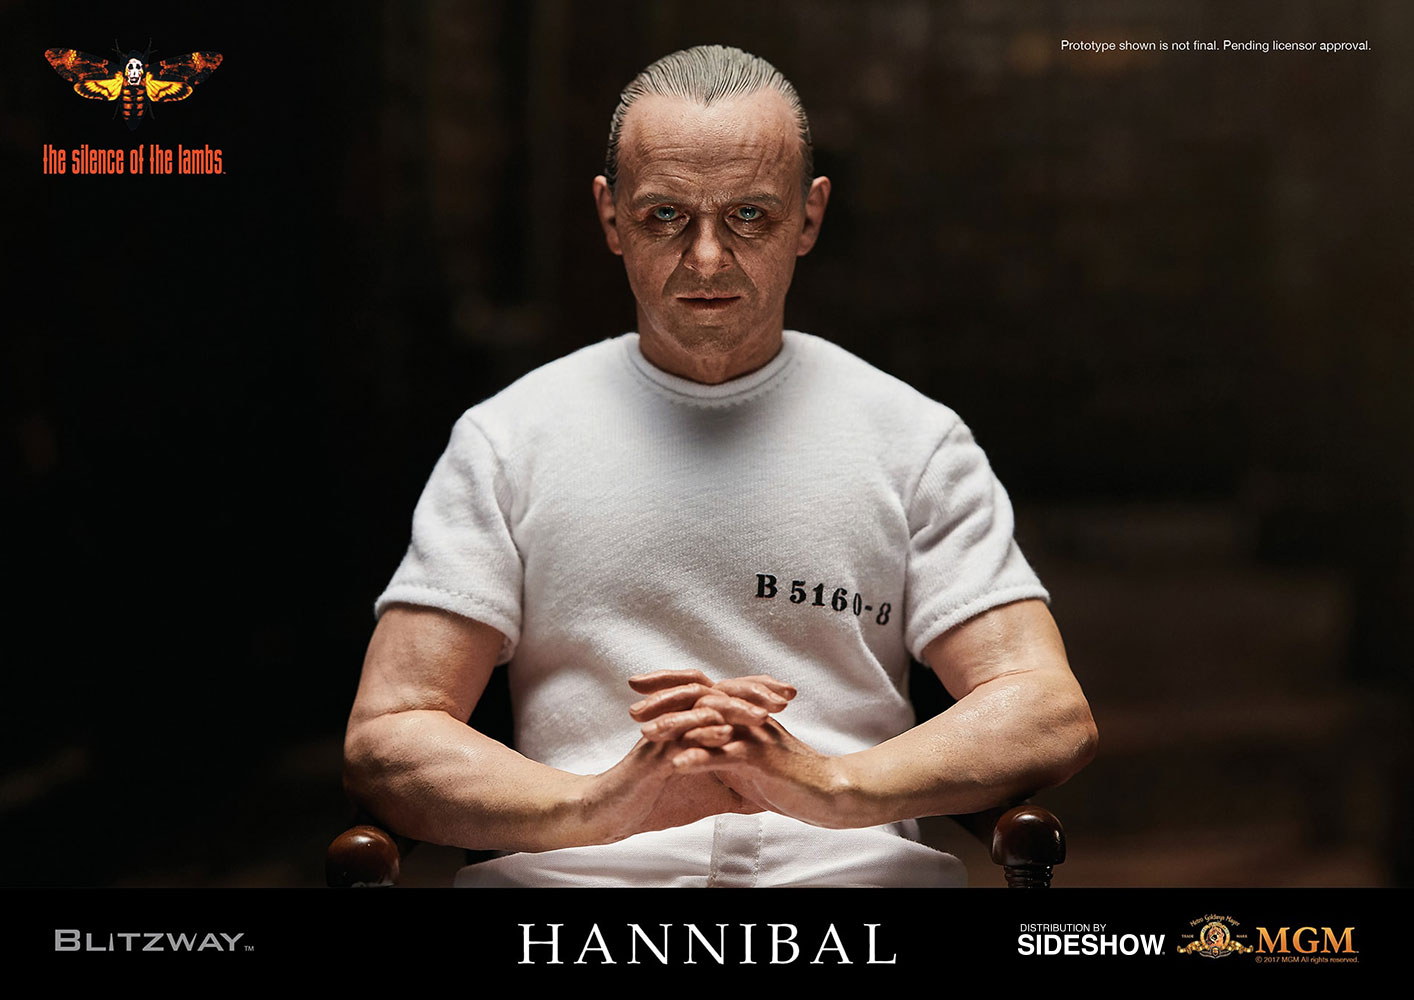 hannibal lecter the character Hannibal lecter is a fictional cannibal and serial killer and the central antagonist from the lecter film series, which is based on a series of novels by.